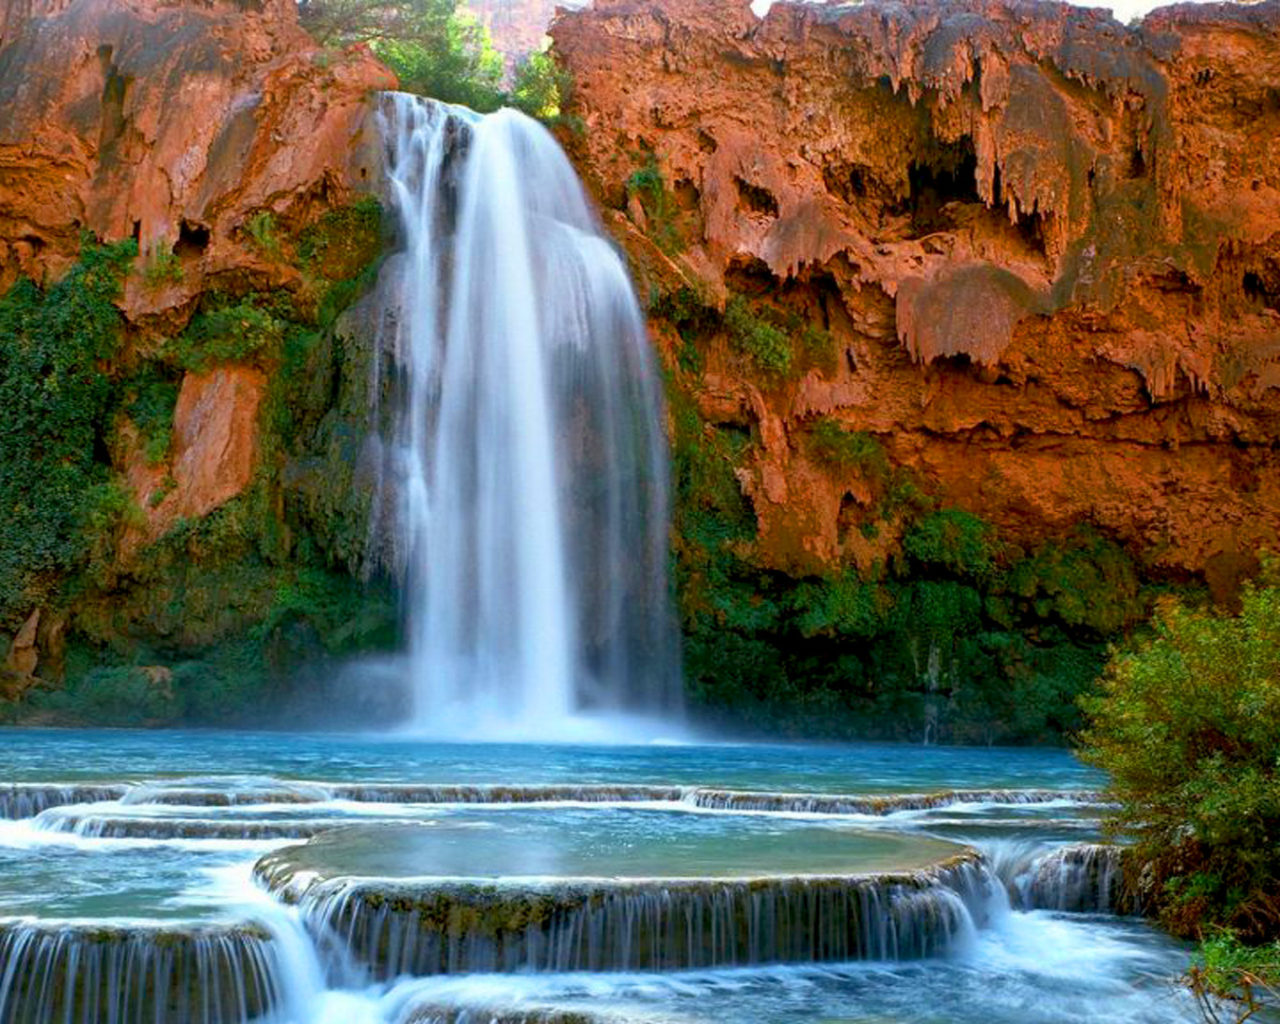 Water Fall Wallpaper Hd For Desktop Free Download Havasu Falls Havasupai Arizona U S Desktop Hd Wallpaper